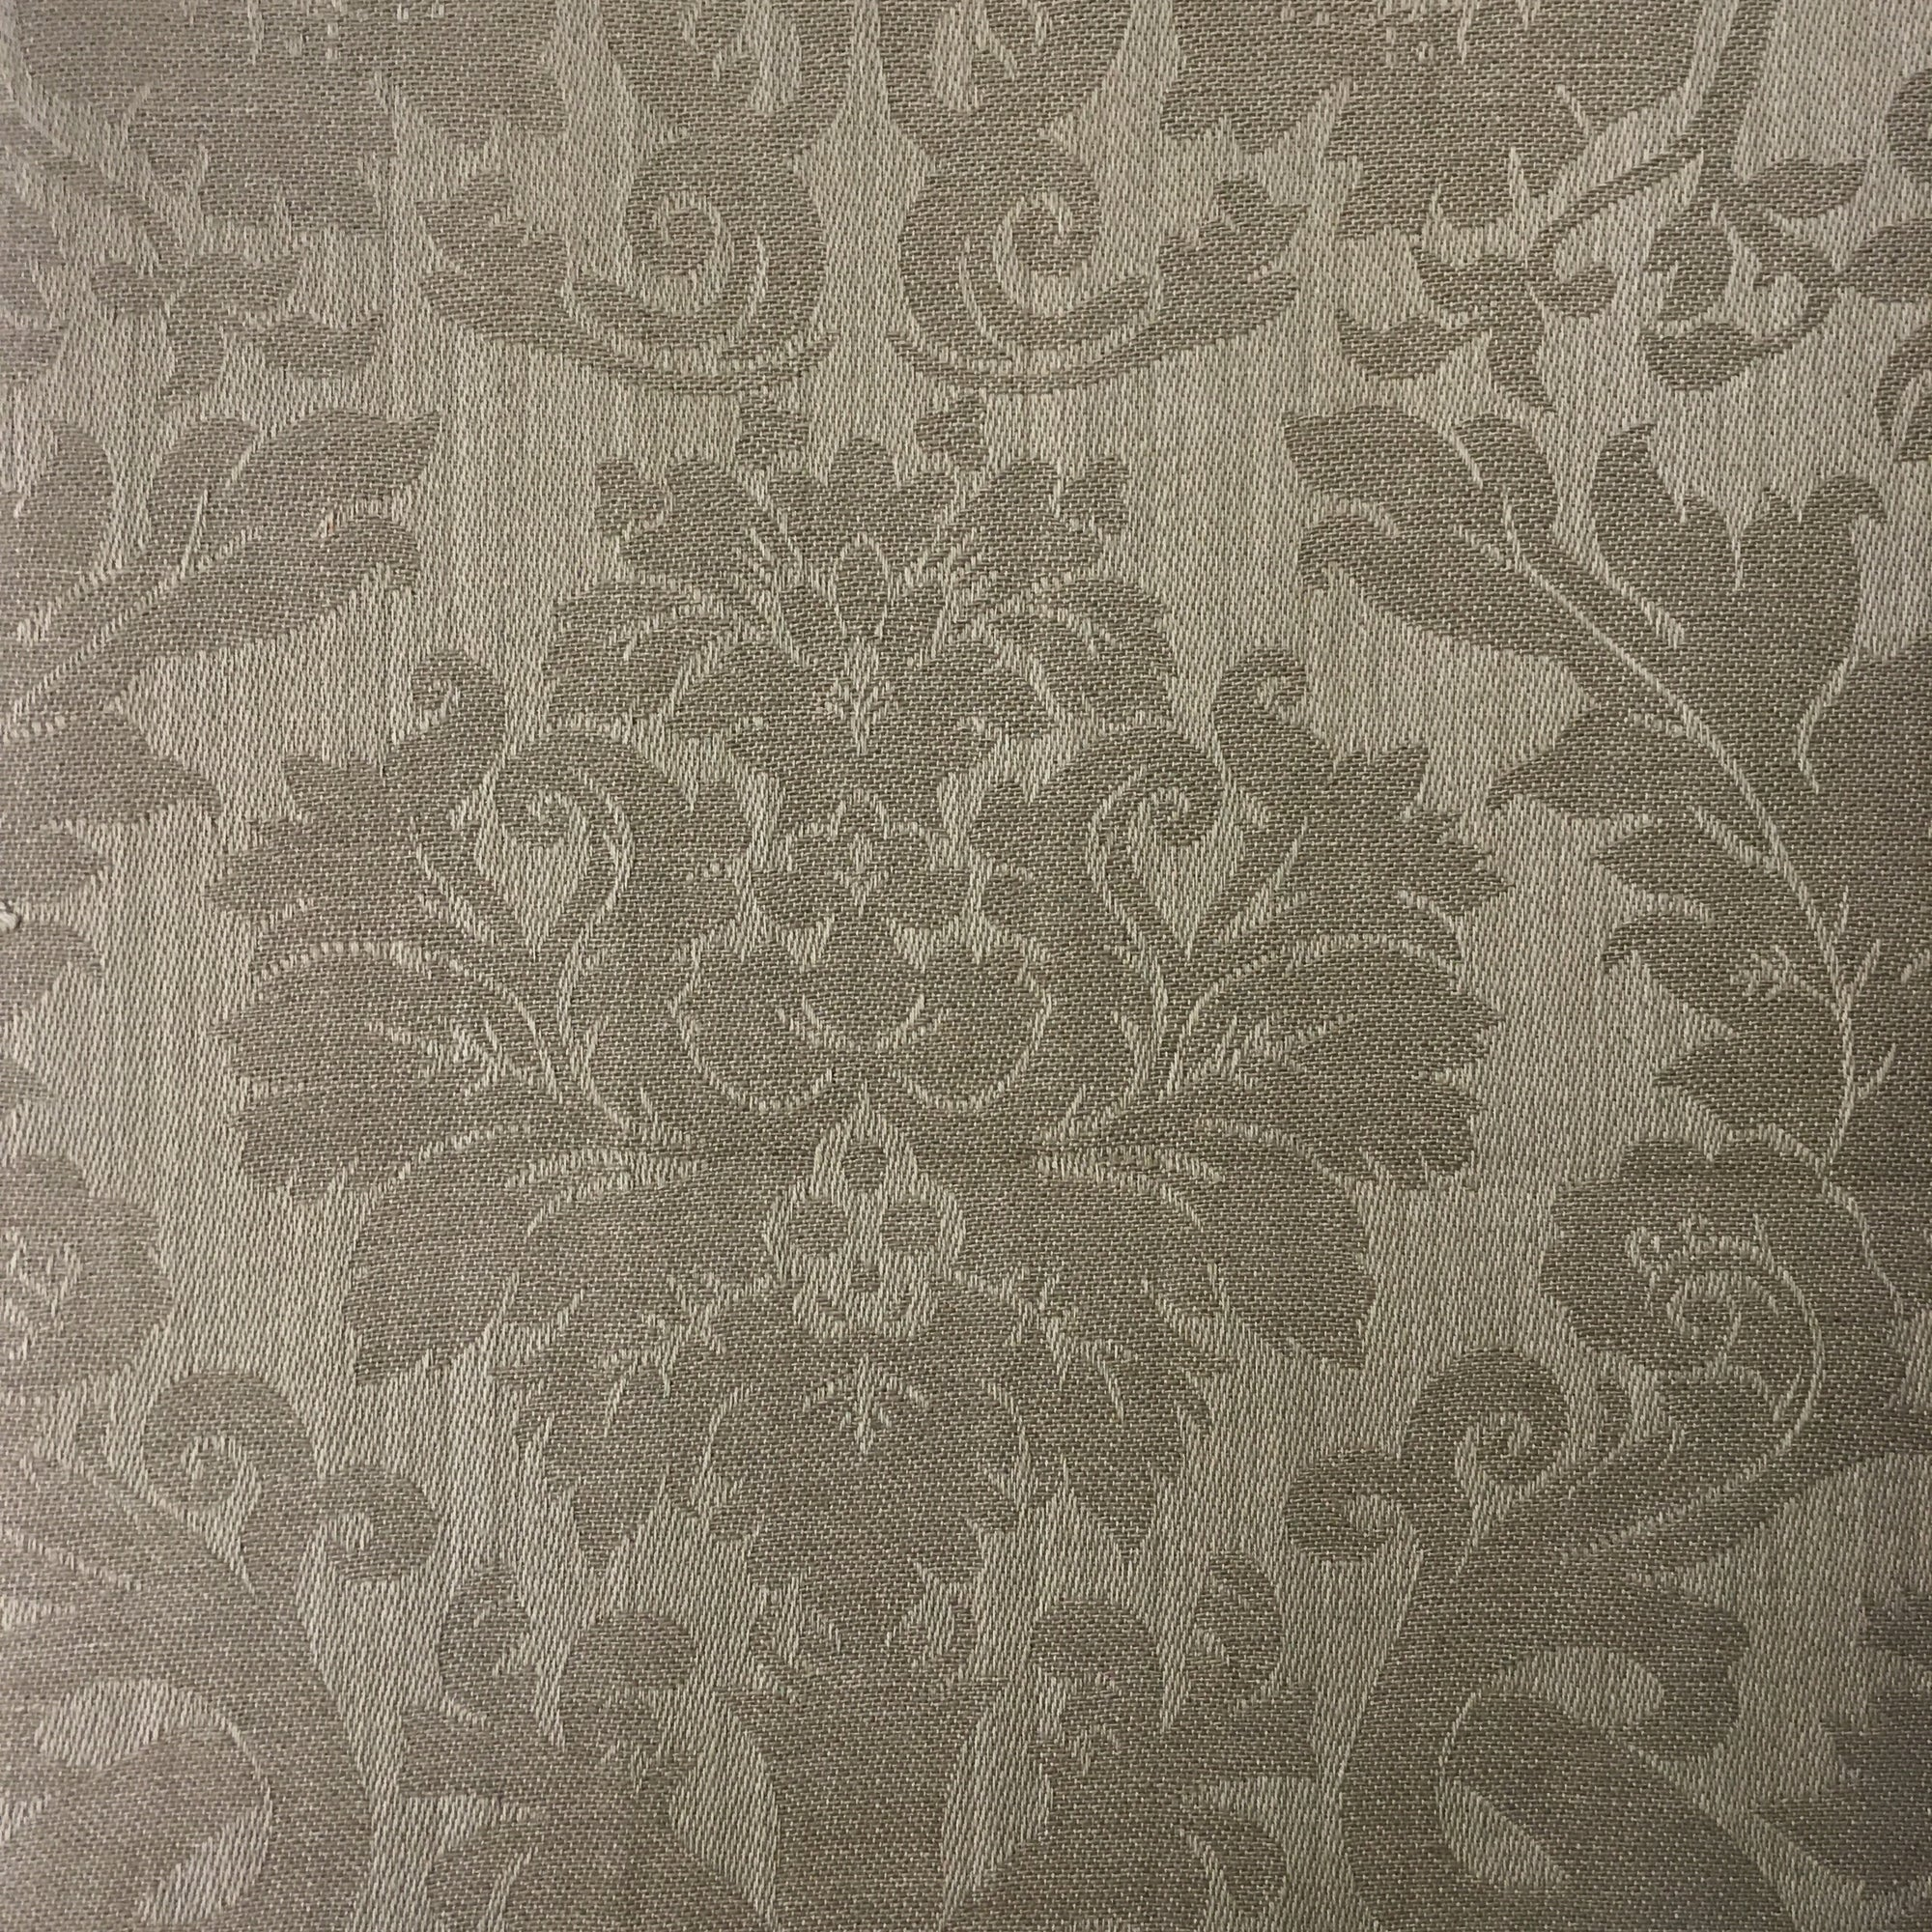 "Mahogany Tablecloth 60x120"" Damask Taupe"